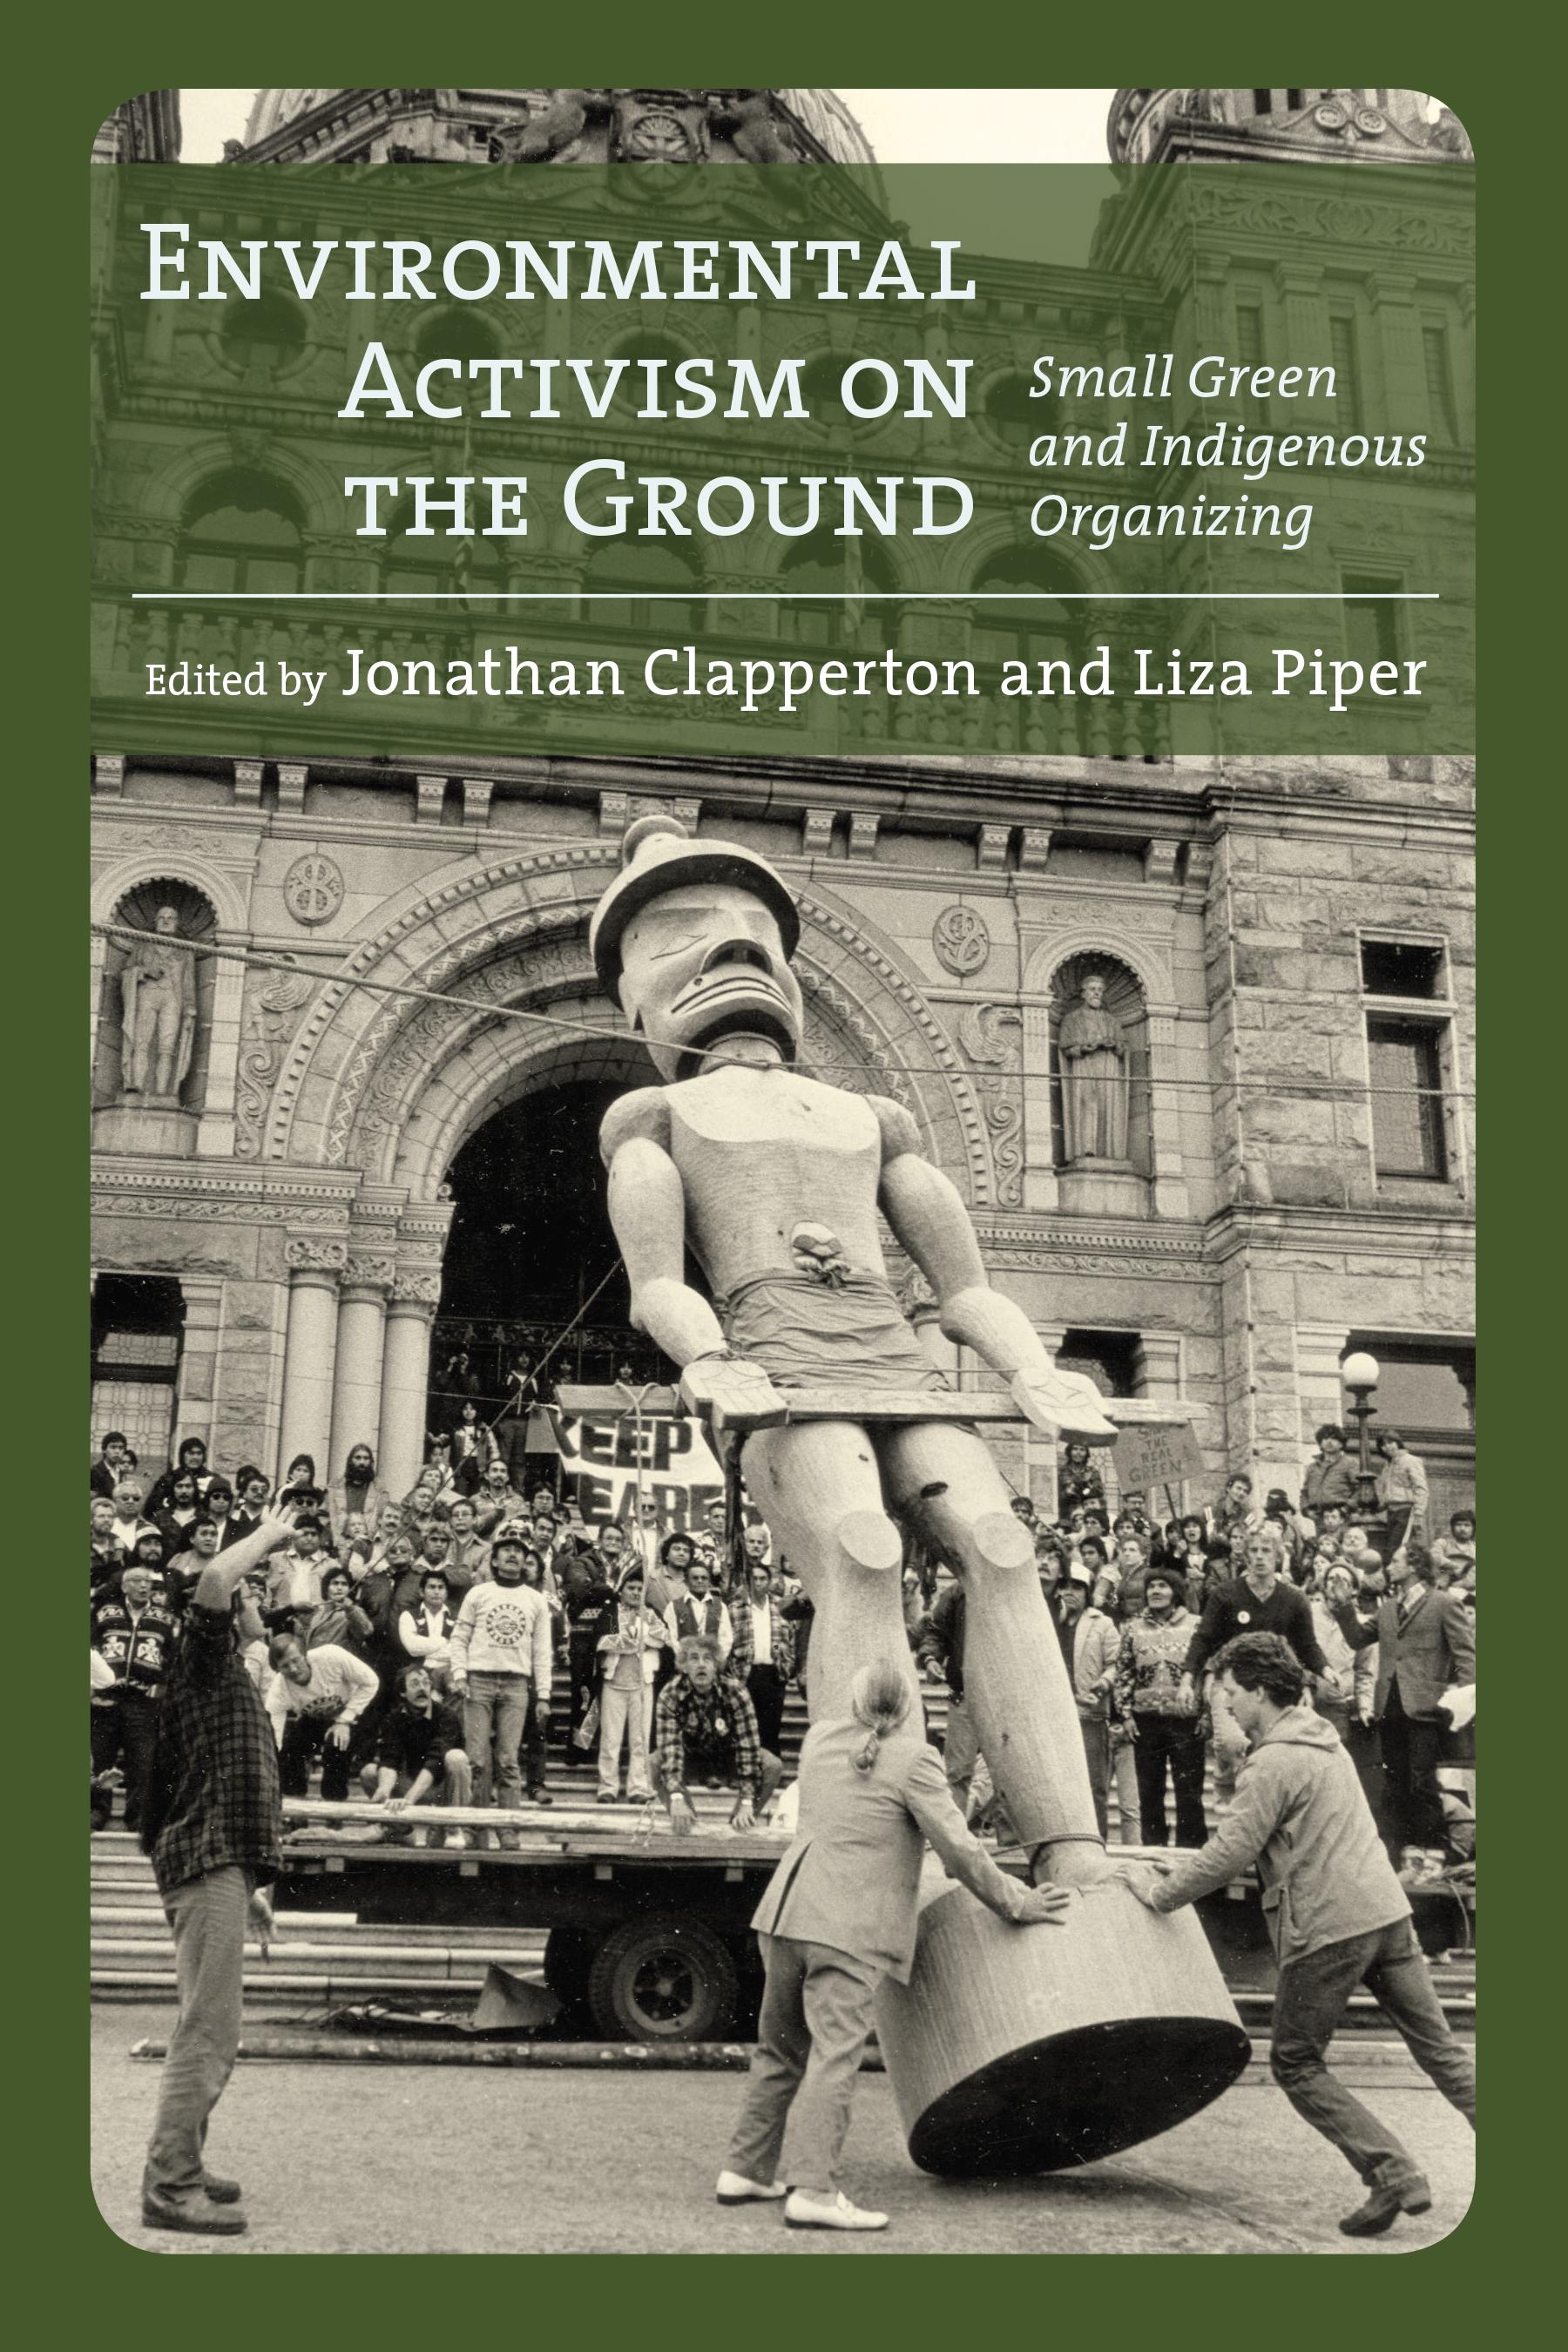 Cover of Environmental Activism on the Ground